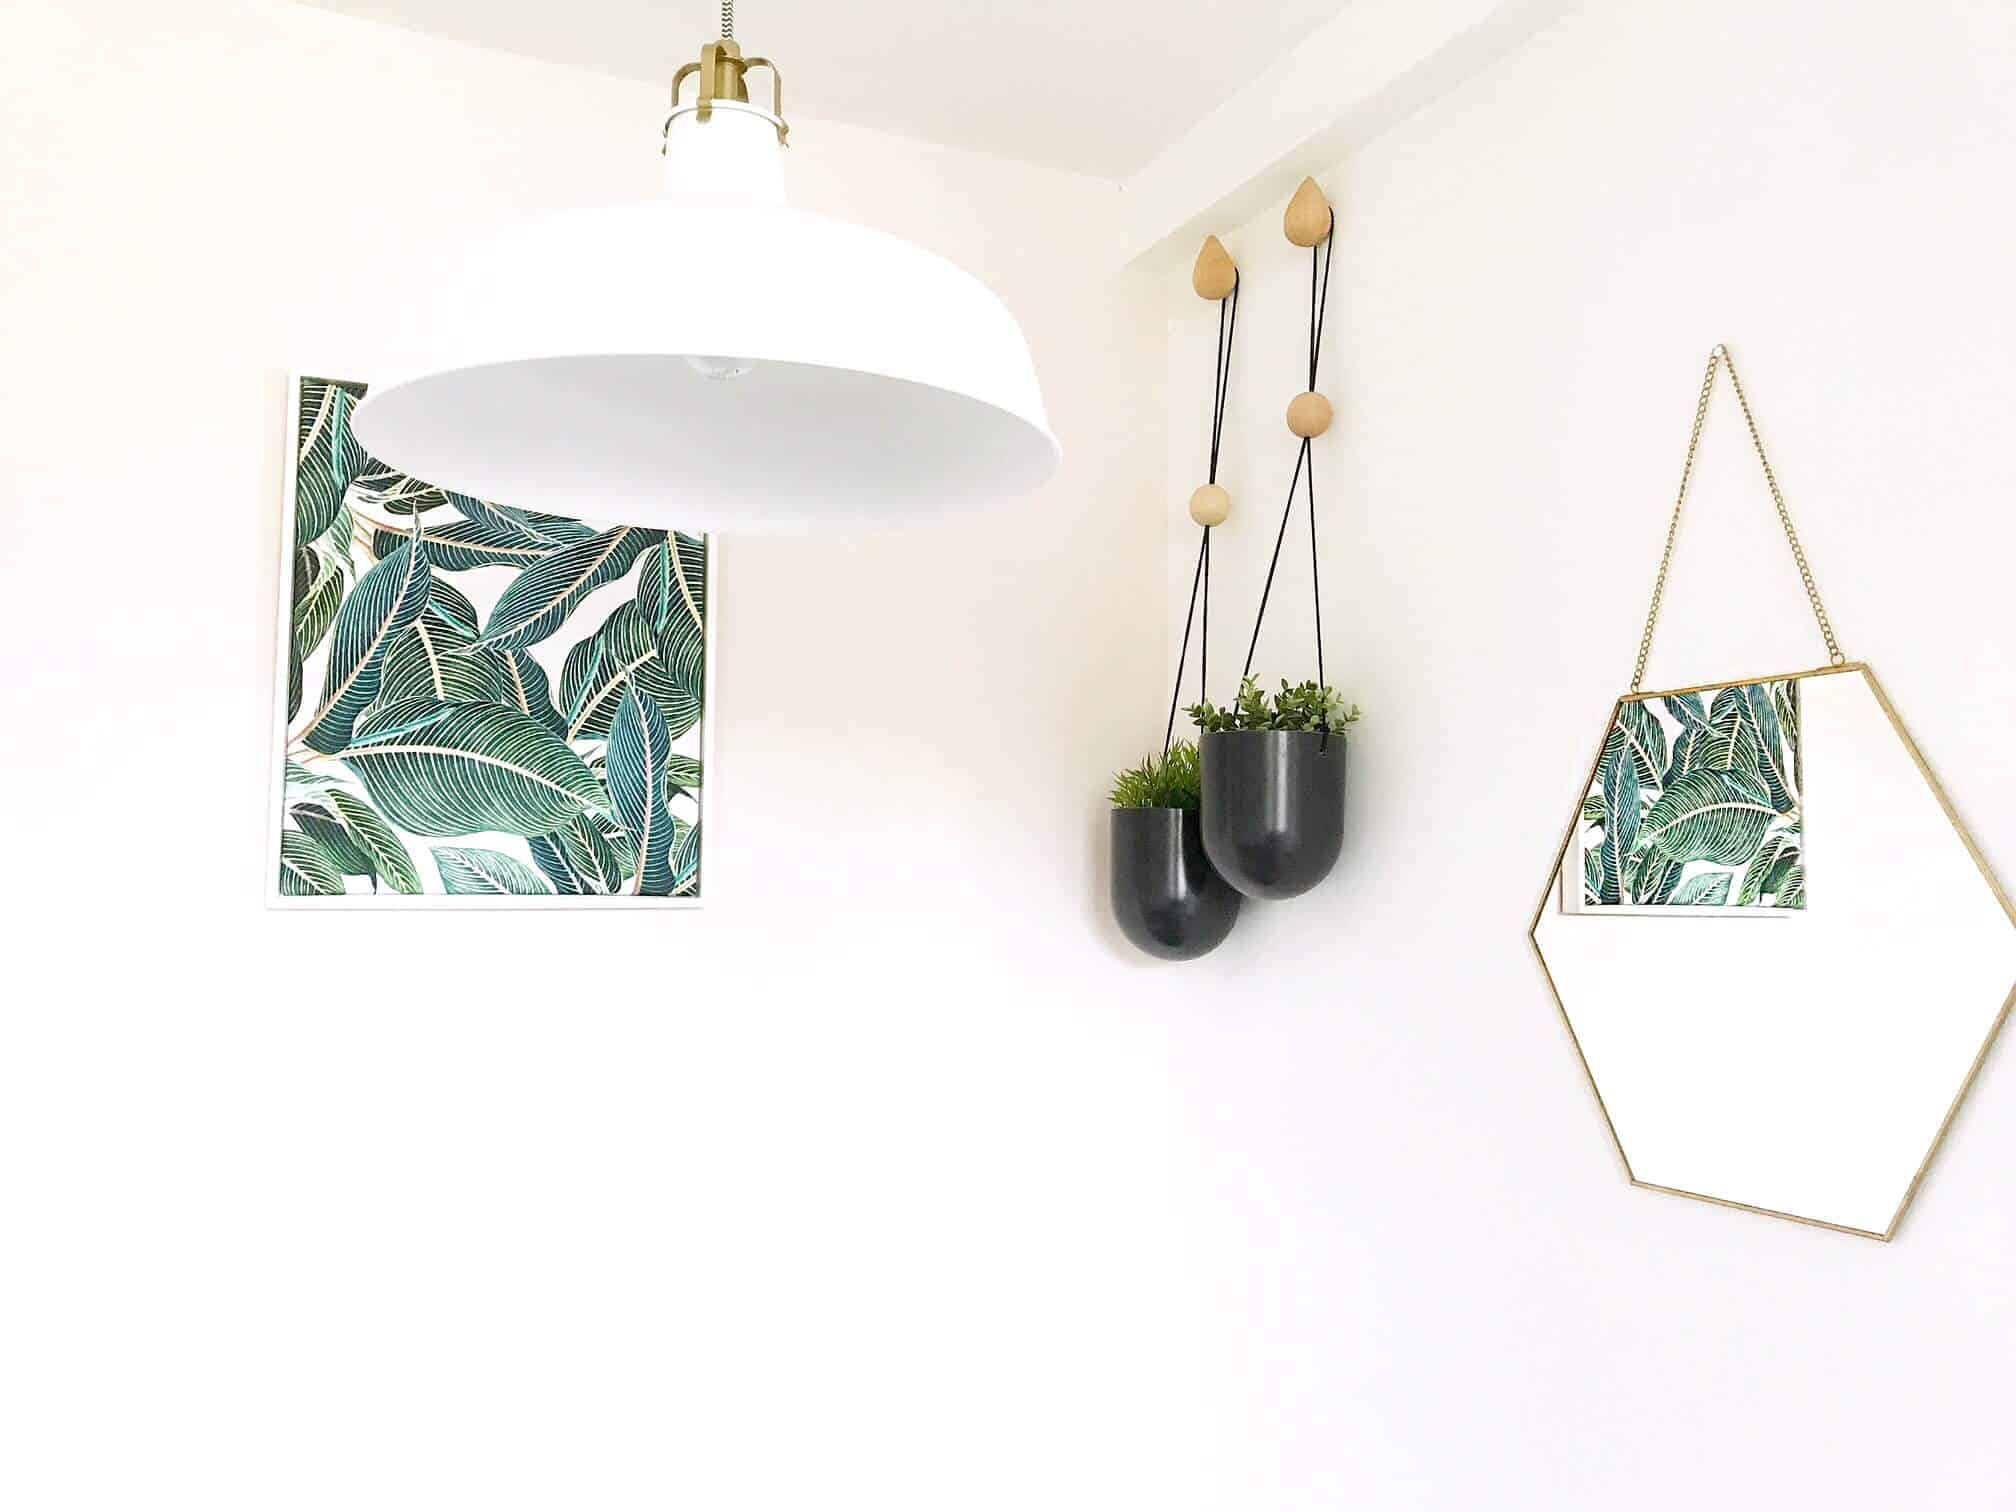 White room with green tropical plant prin reflected in a hexagonal mirror